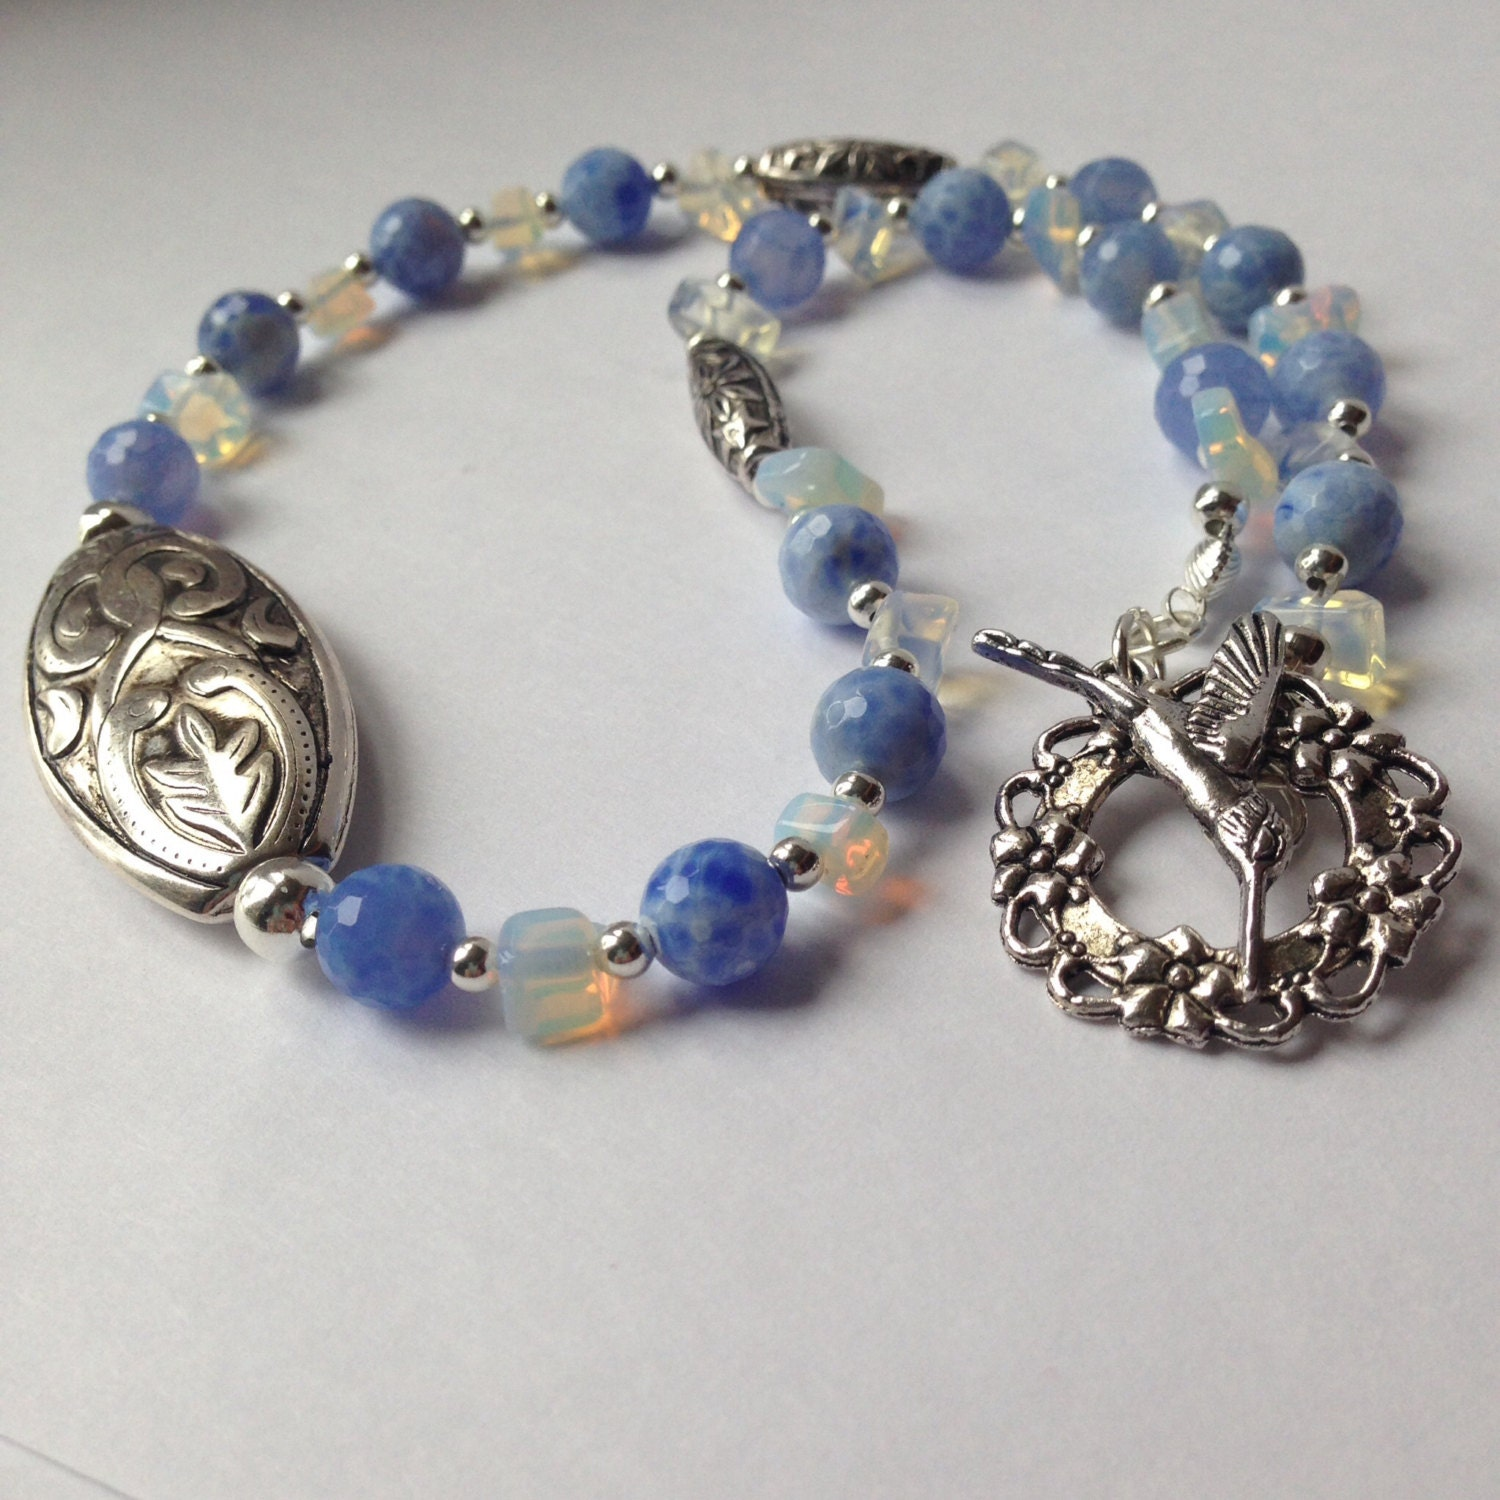 hummingbird necklace blue lace agate and opalite necklace